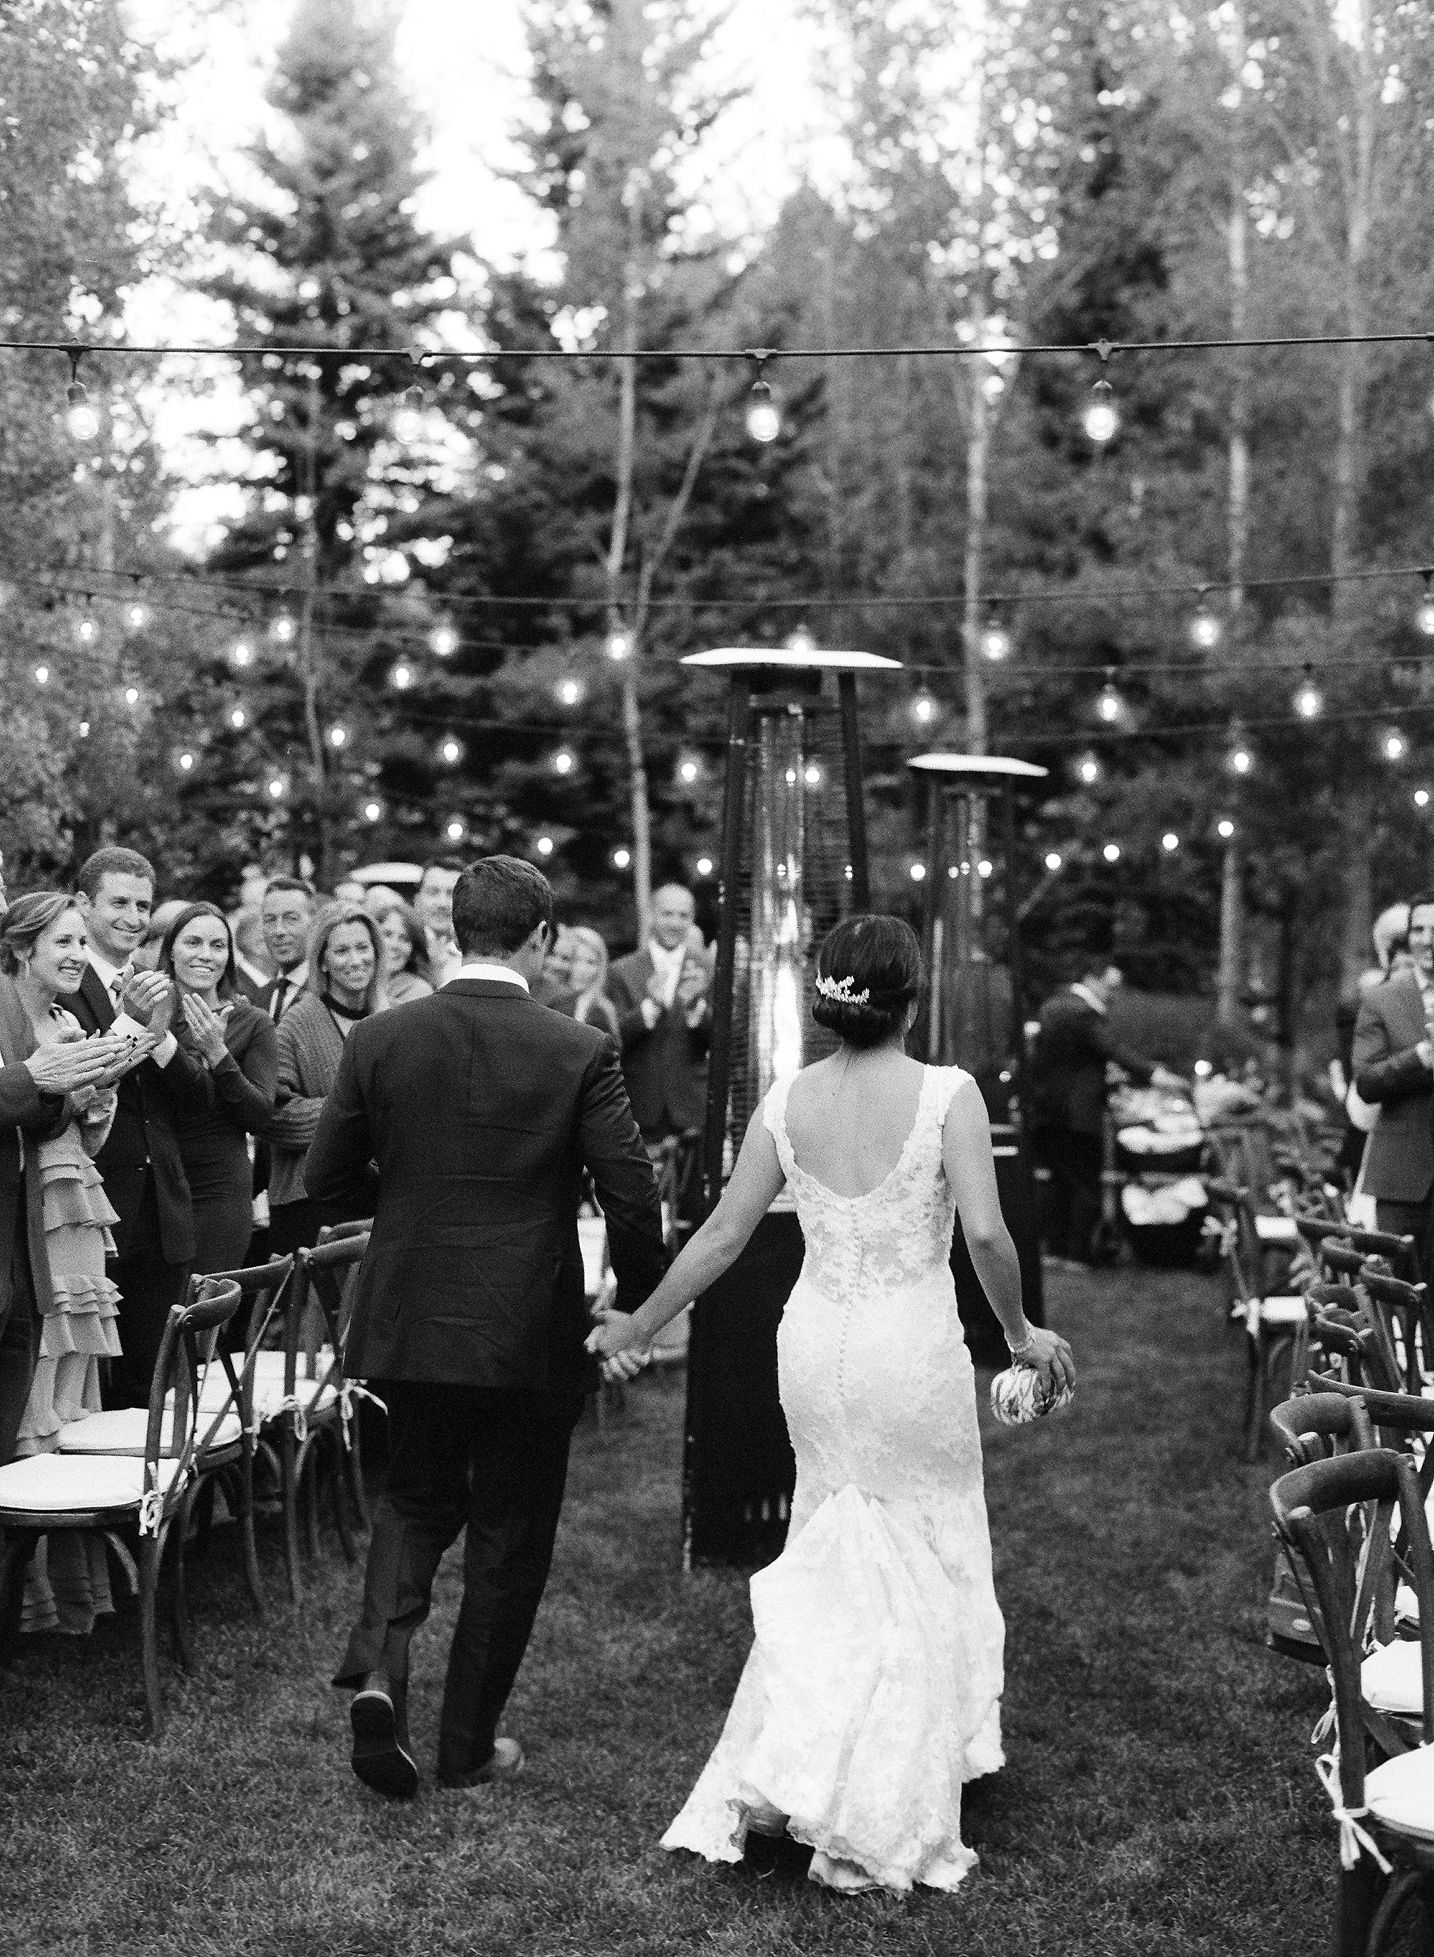 bride and groom holding hands walking into wedding reception